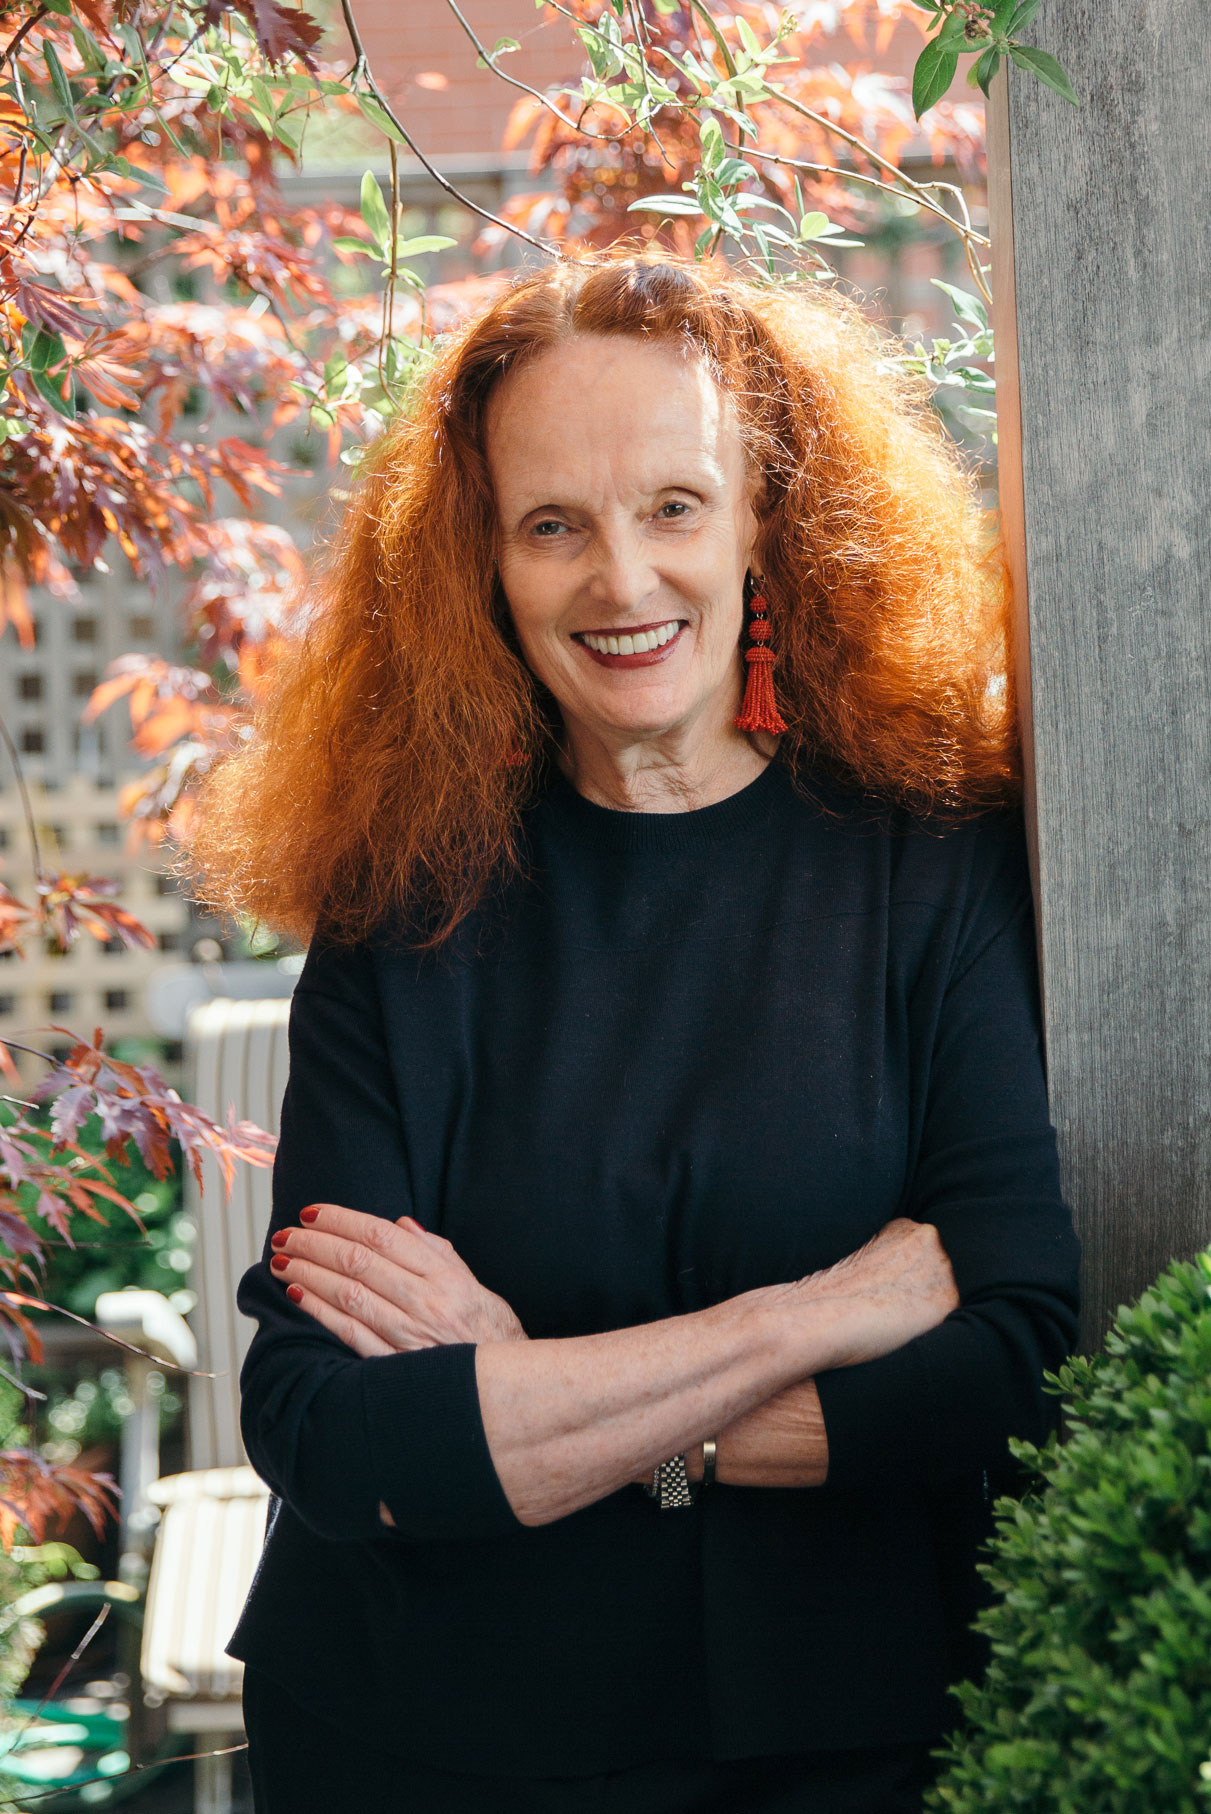 Closet Depth Grace Coddington On What It Takes To Be Her Assistant